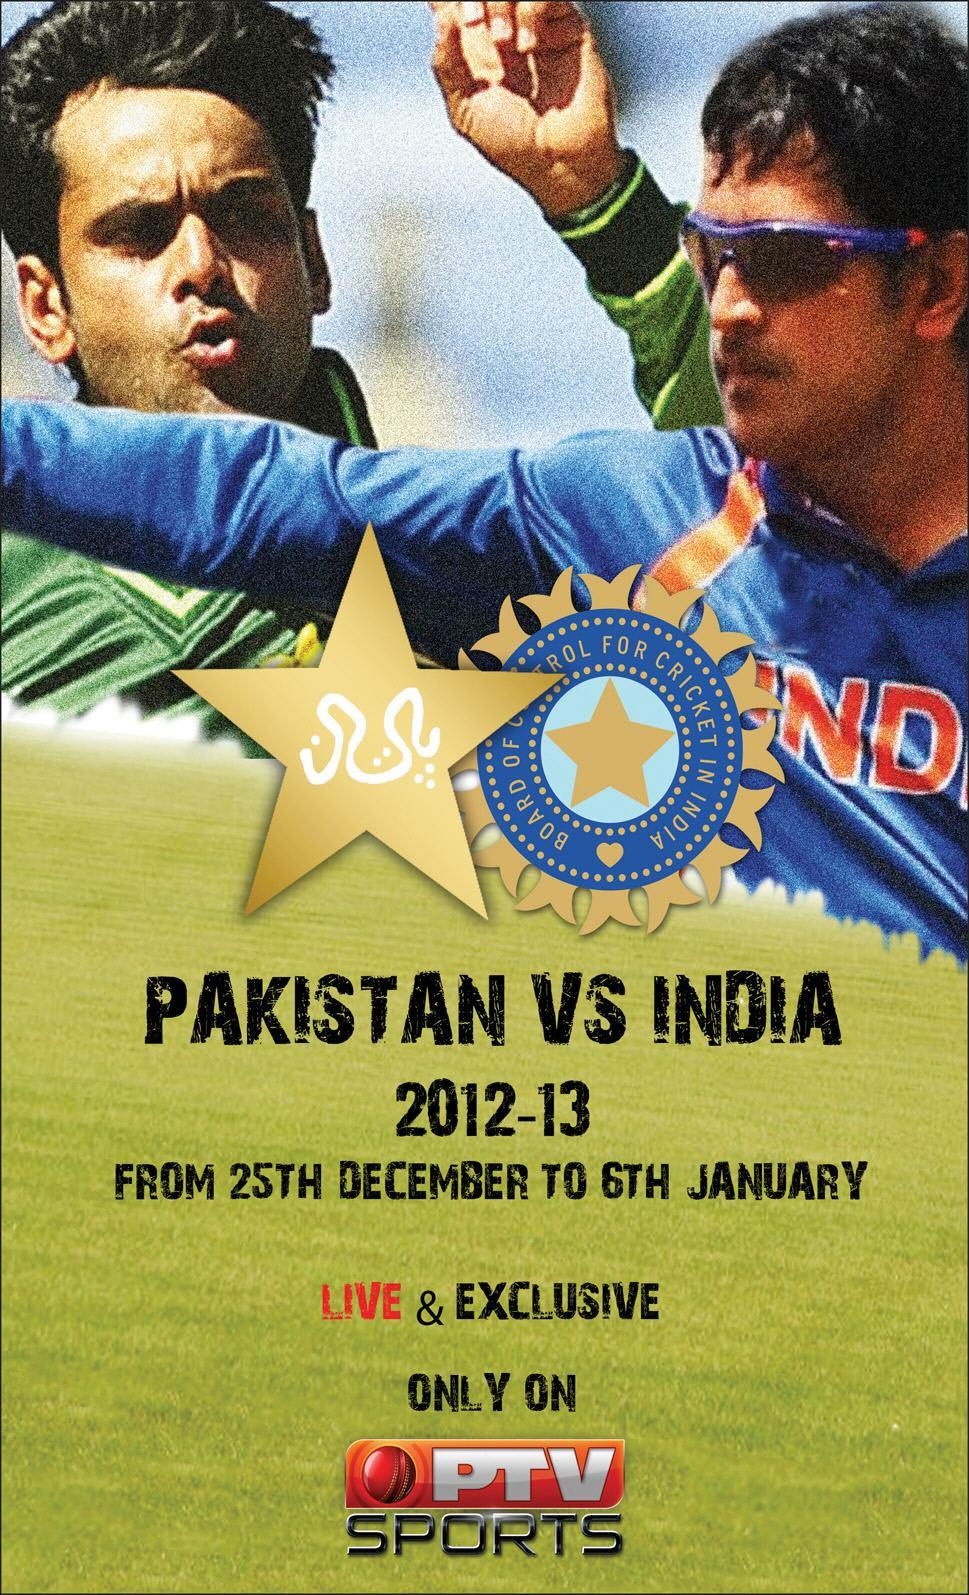 Pakistan VS India Cricket Series Schedule